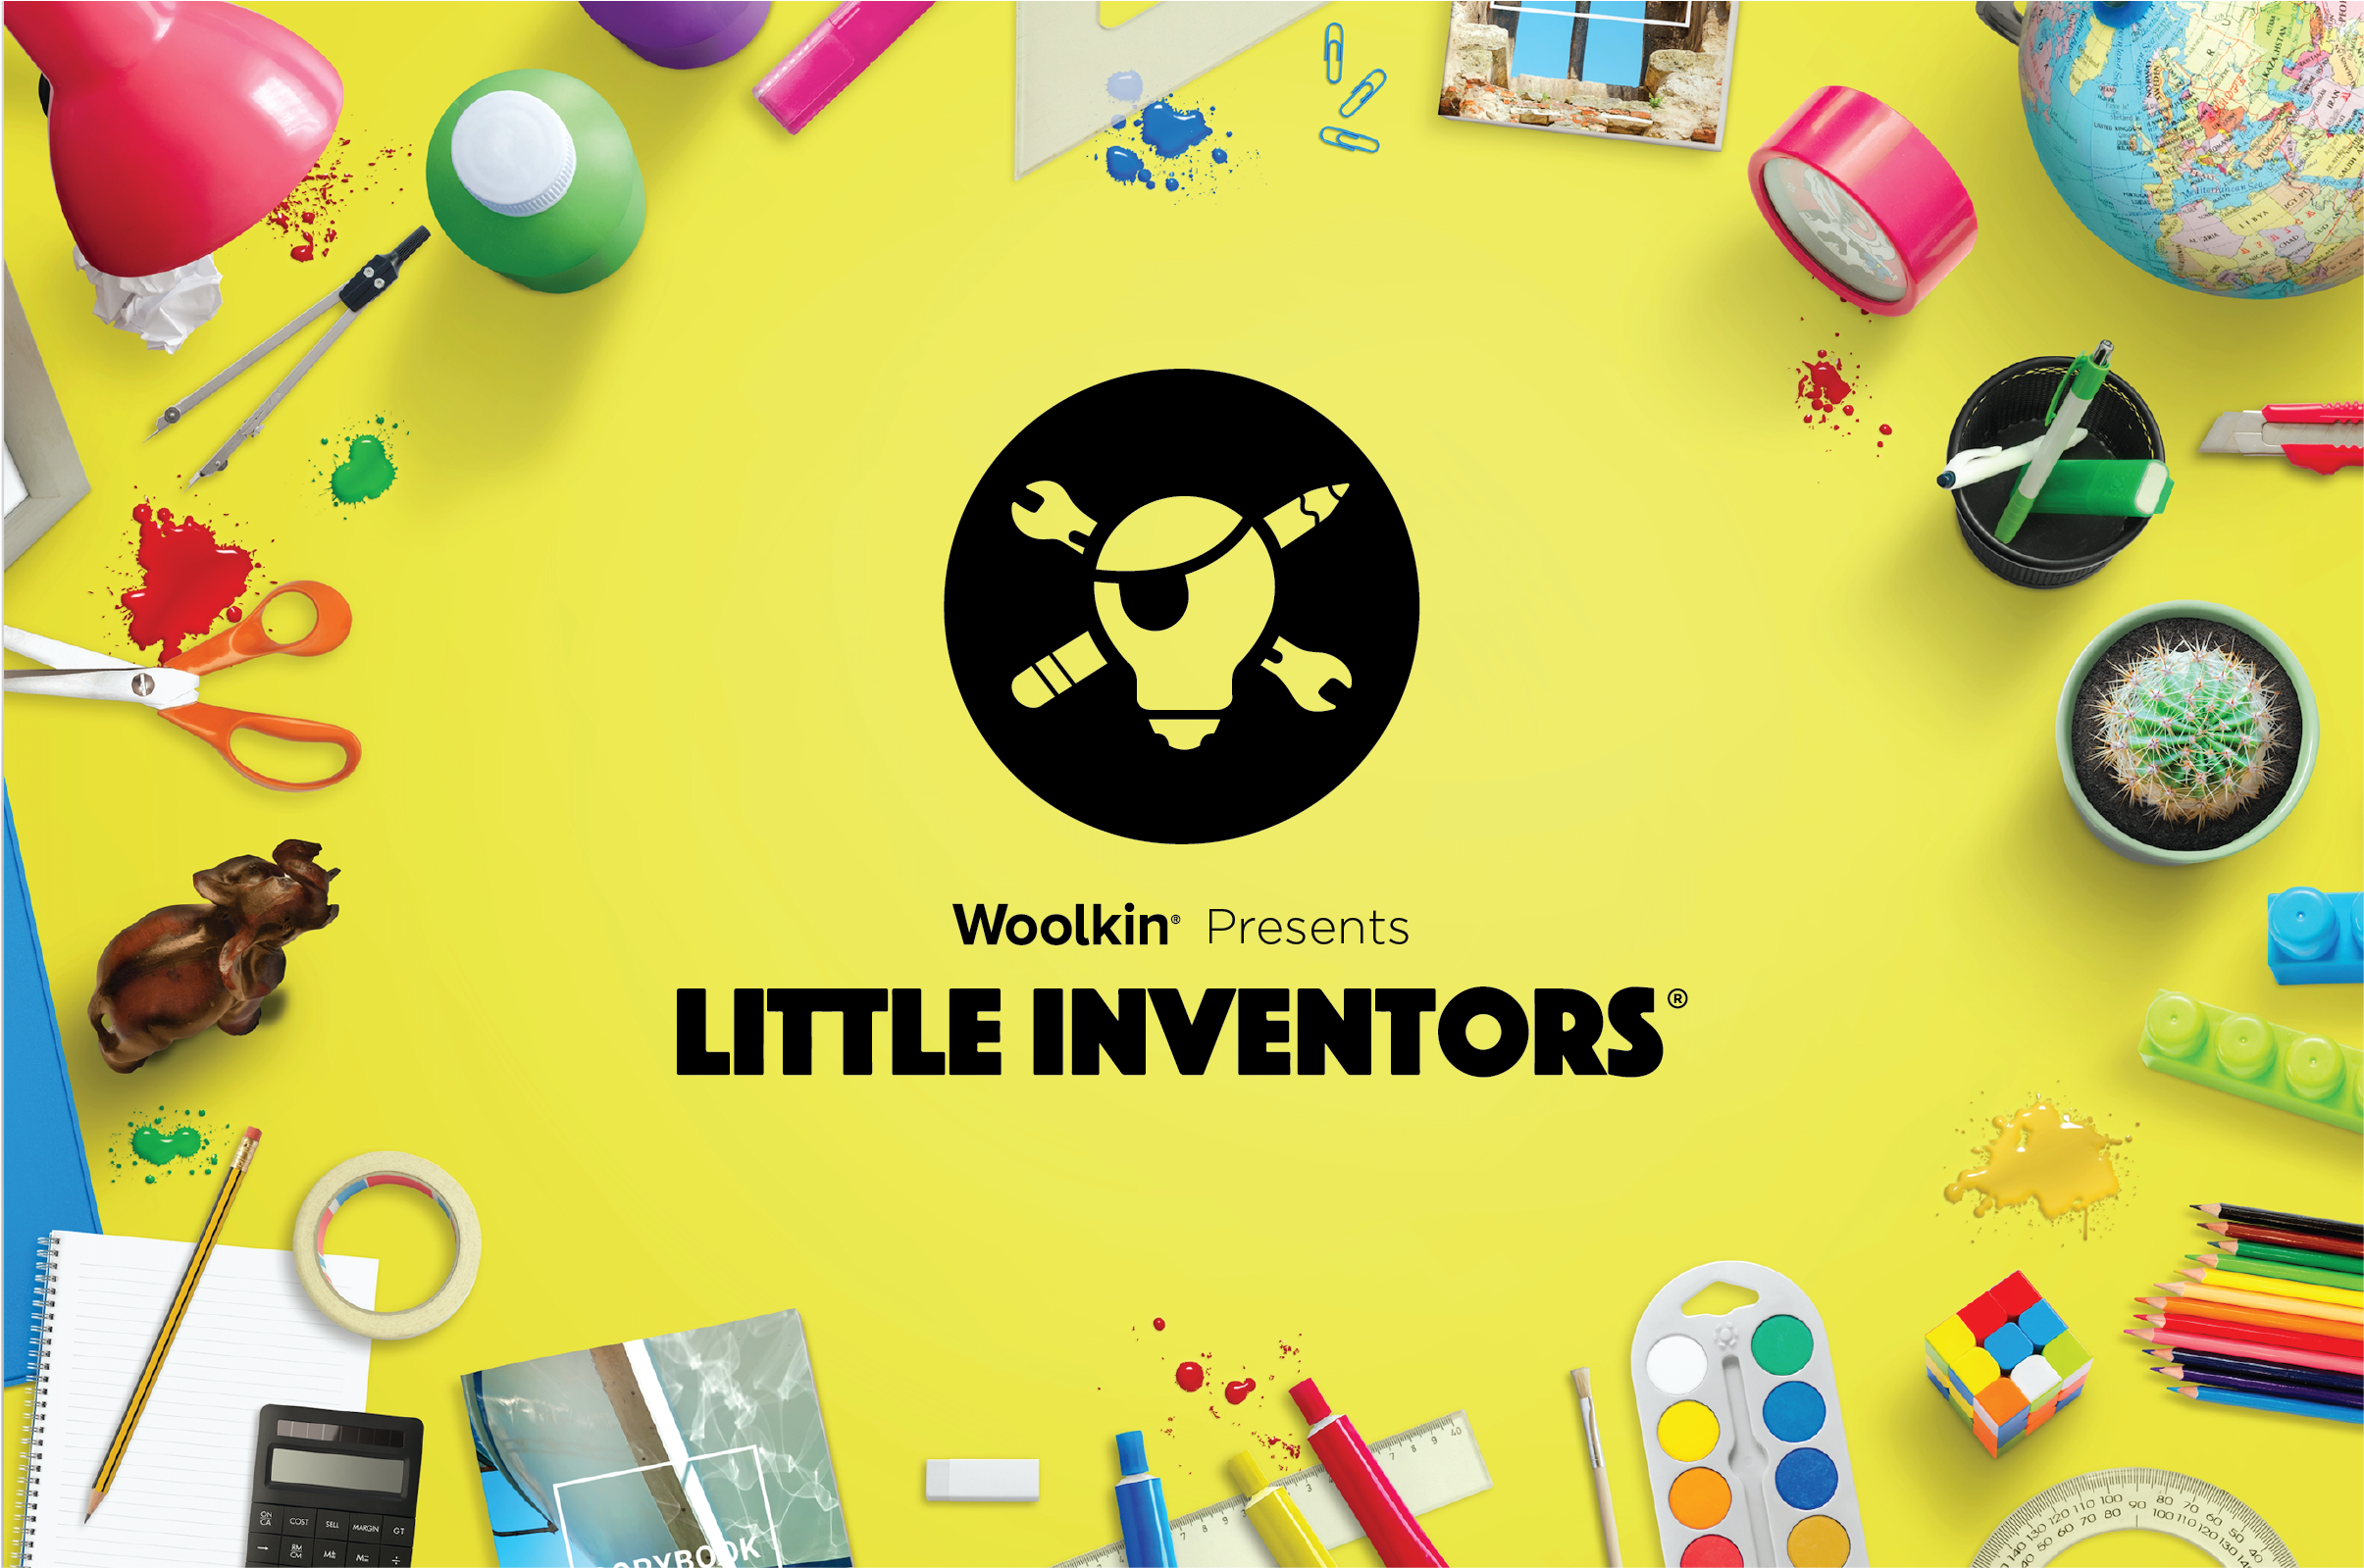 LittleInventors_Event Banner Image w Logo.png